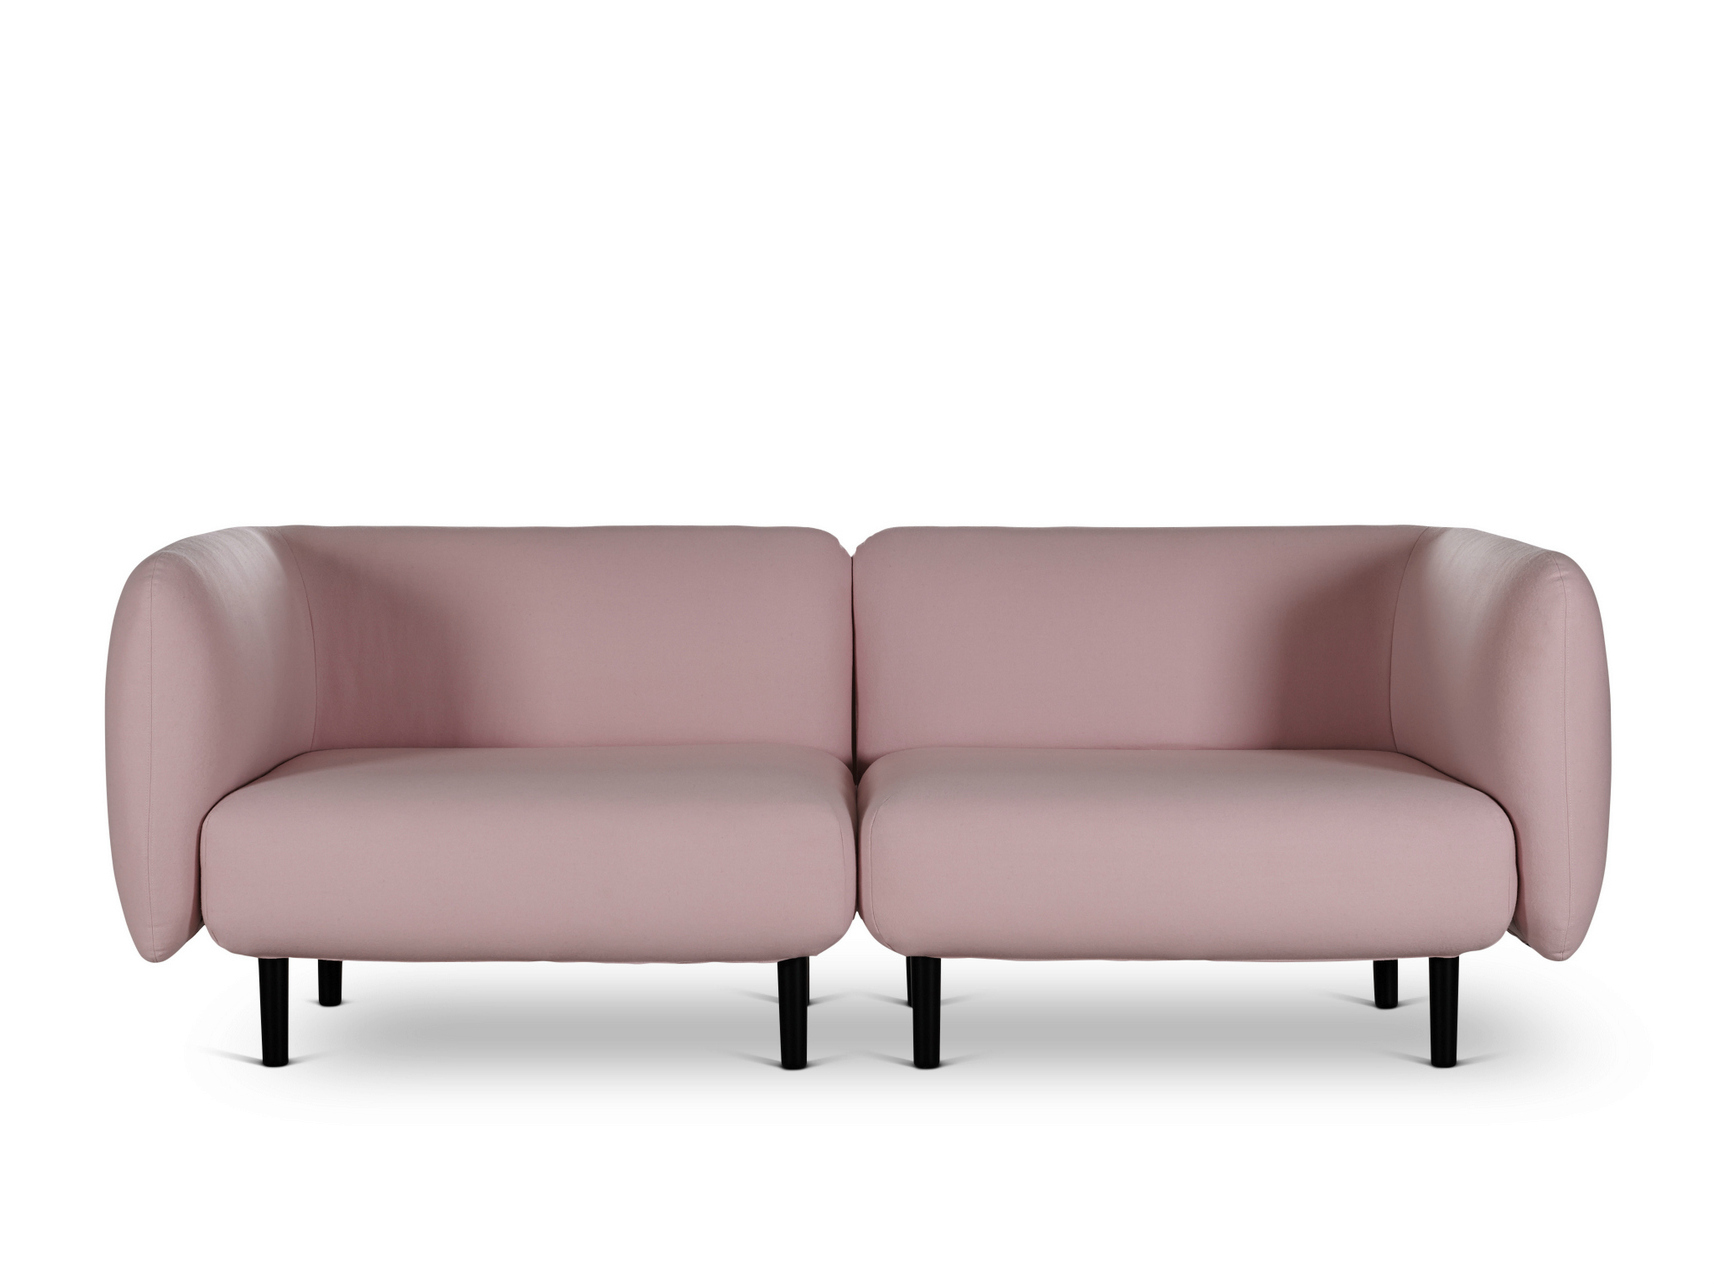 Elle Modular Sofa By Charlotte H 248 Ncke For Softline Sohomod Blog